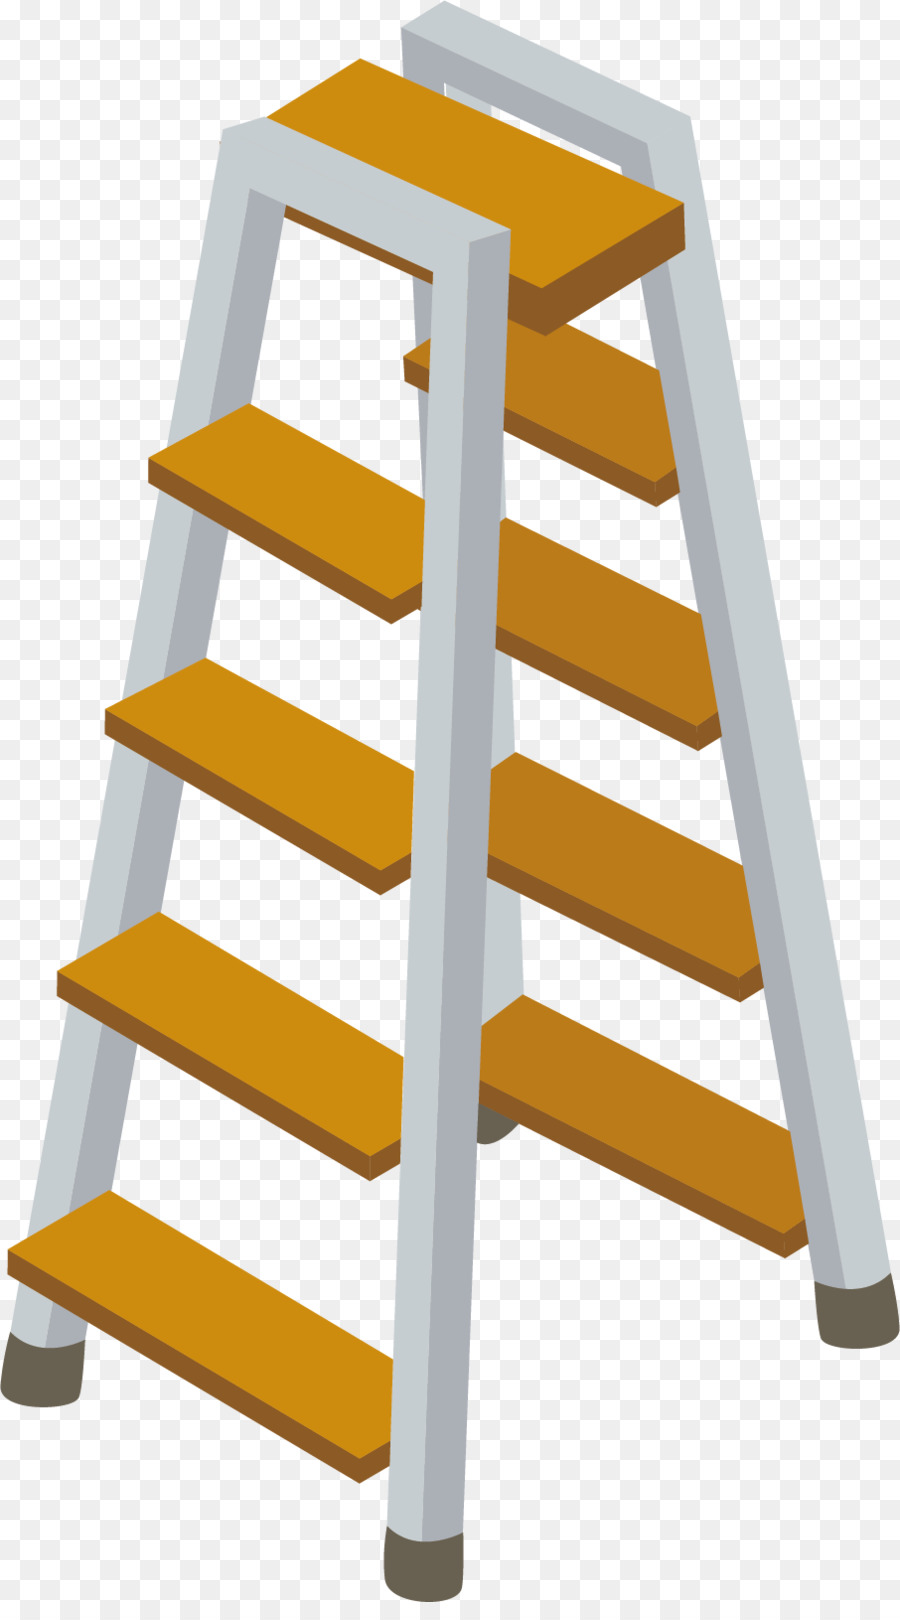 Ladder clipart yellow ladder. Cartoon png download free